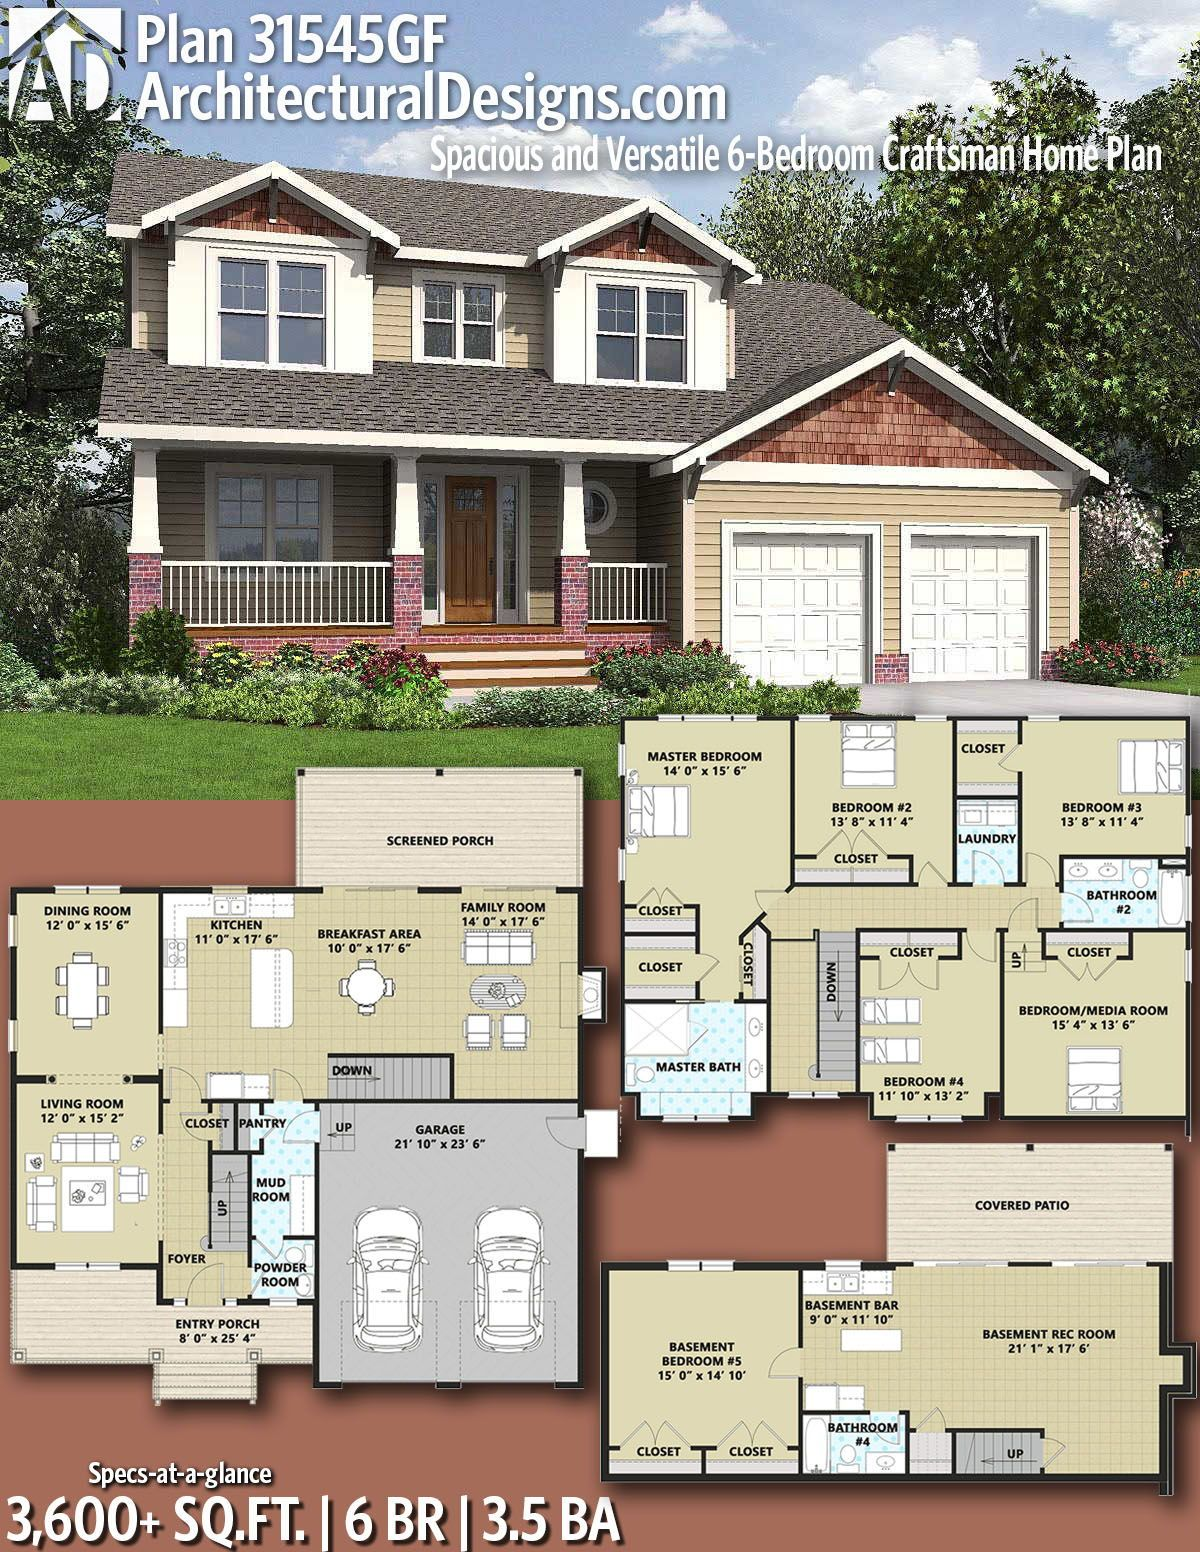 Plan 31545gf Spacious And Versatile 6 Bedroom Craftsman Home Plan Craftsman House Plans Craftsman House House Plans